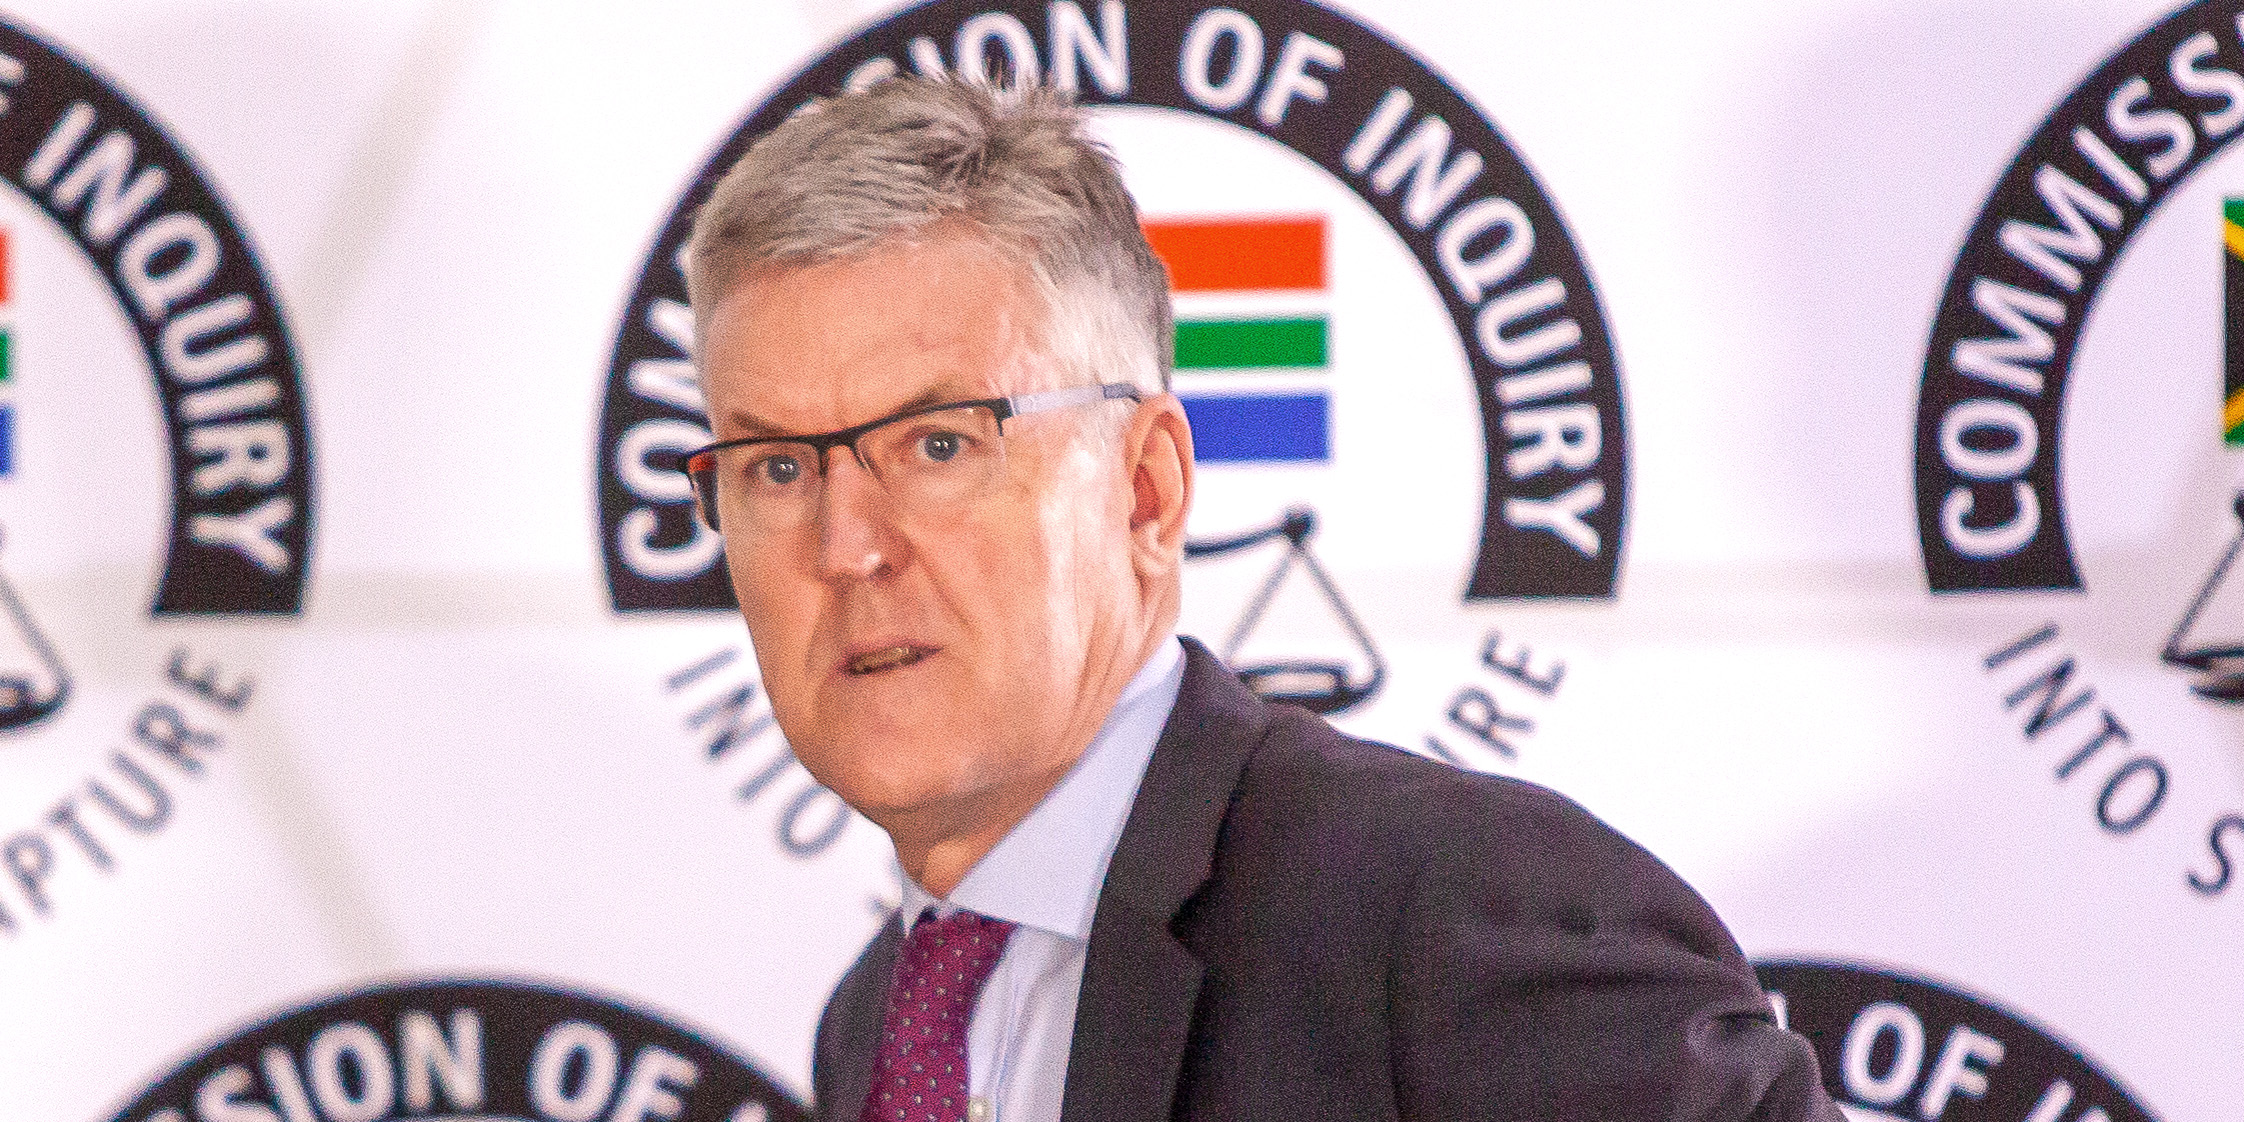 'It takes two to corrupt': Corporate SA needs to adopt zero tolerance on corruption, says EOH CEO - Daily Maverick